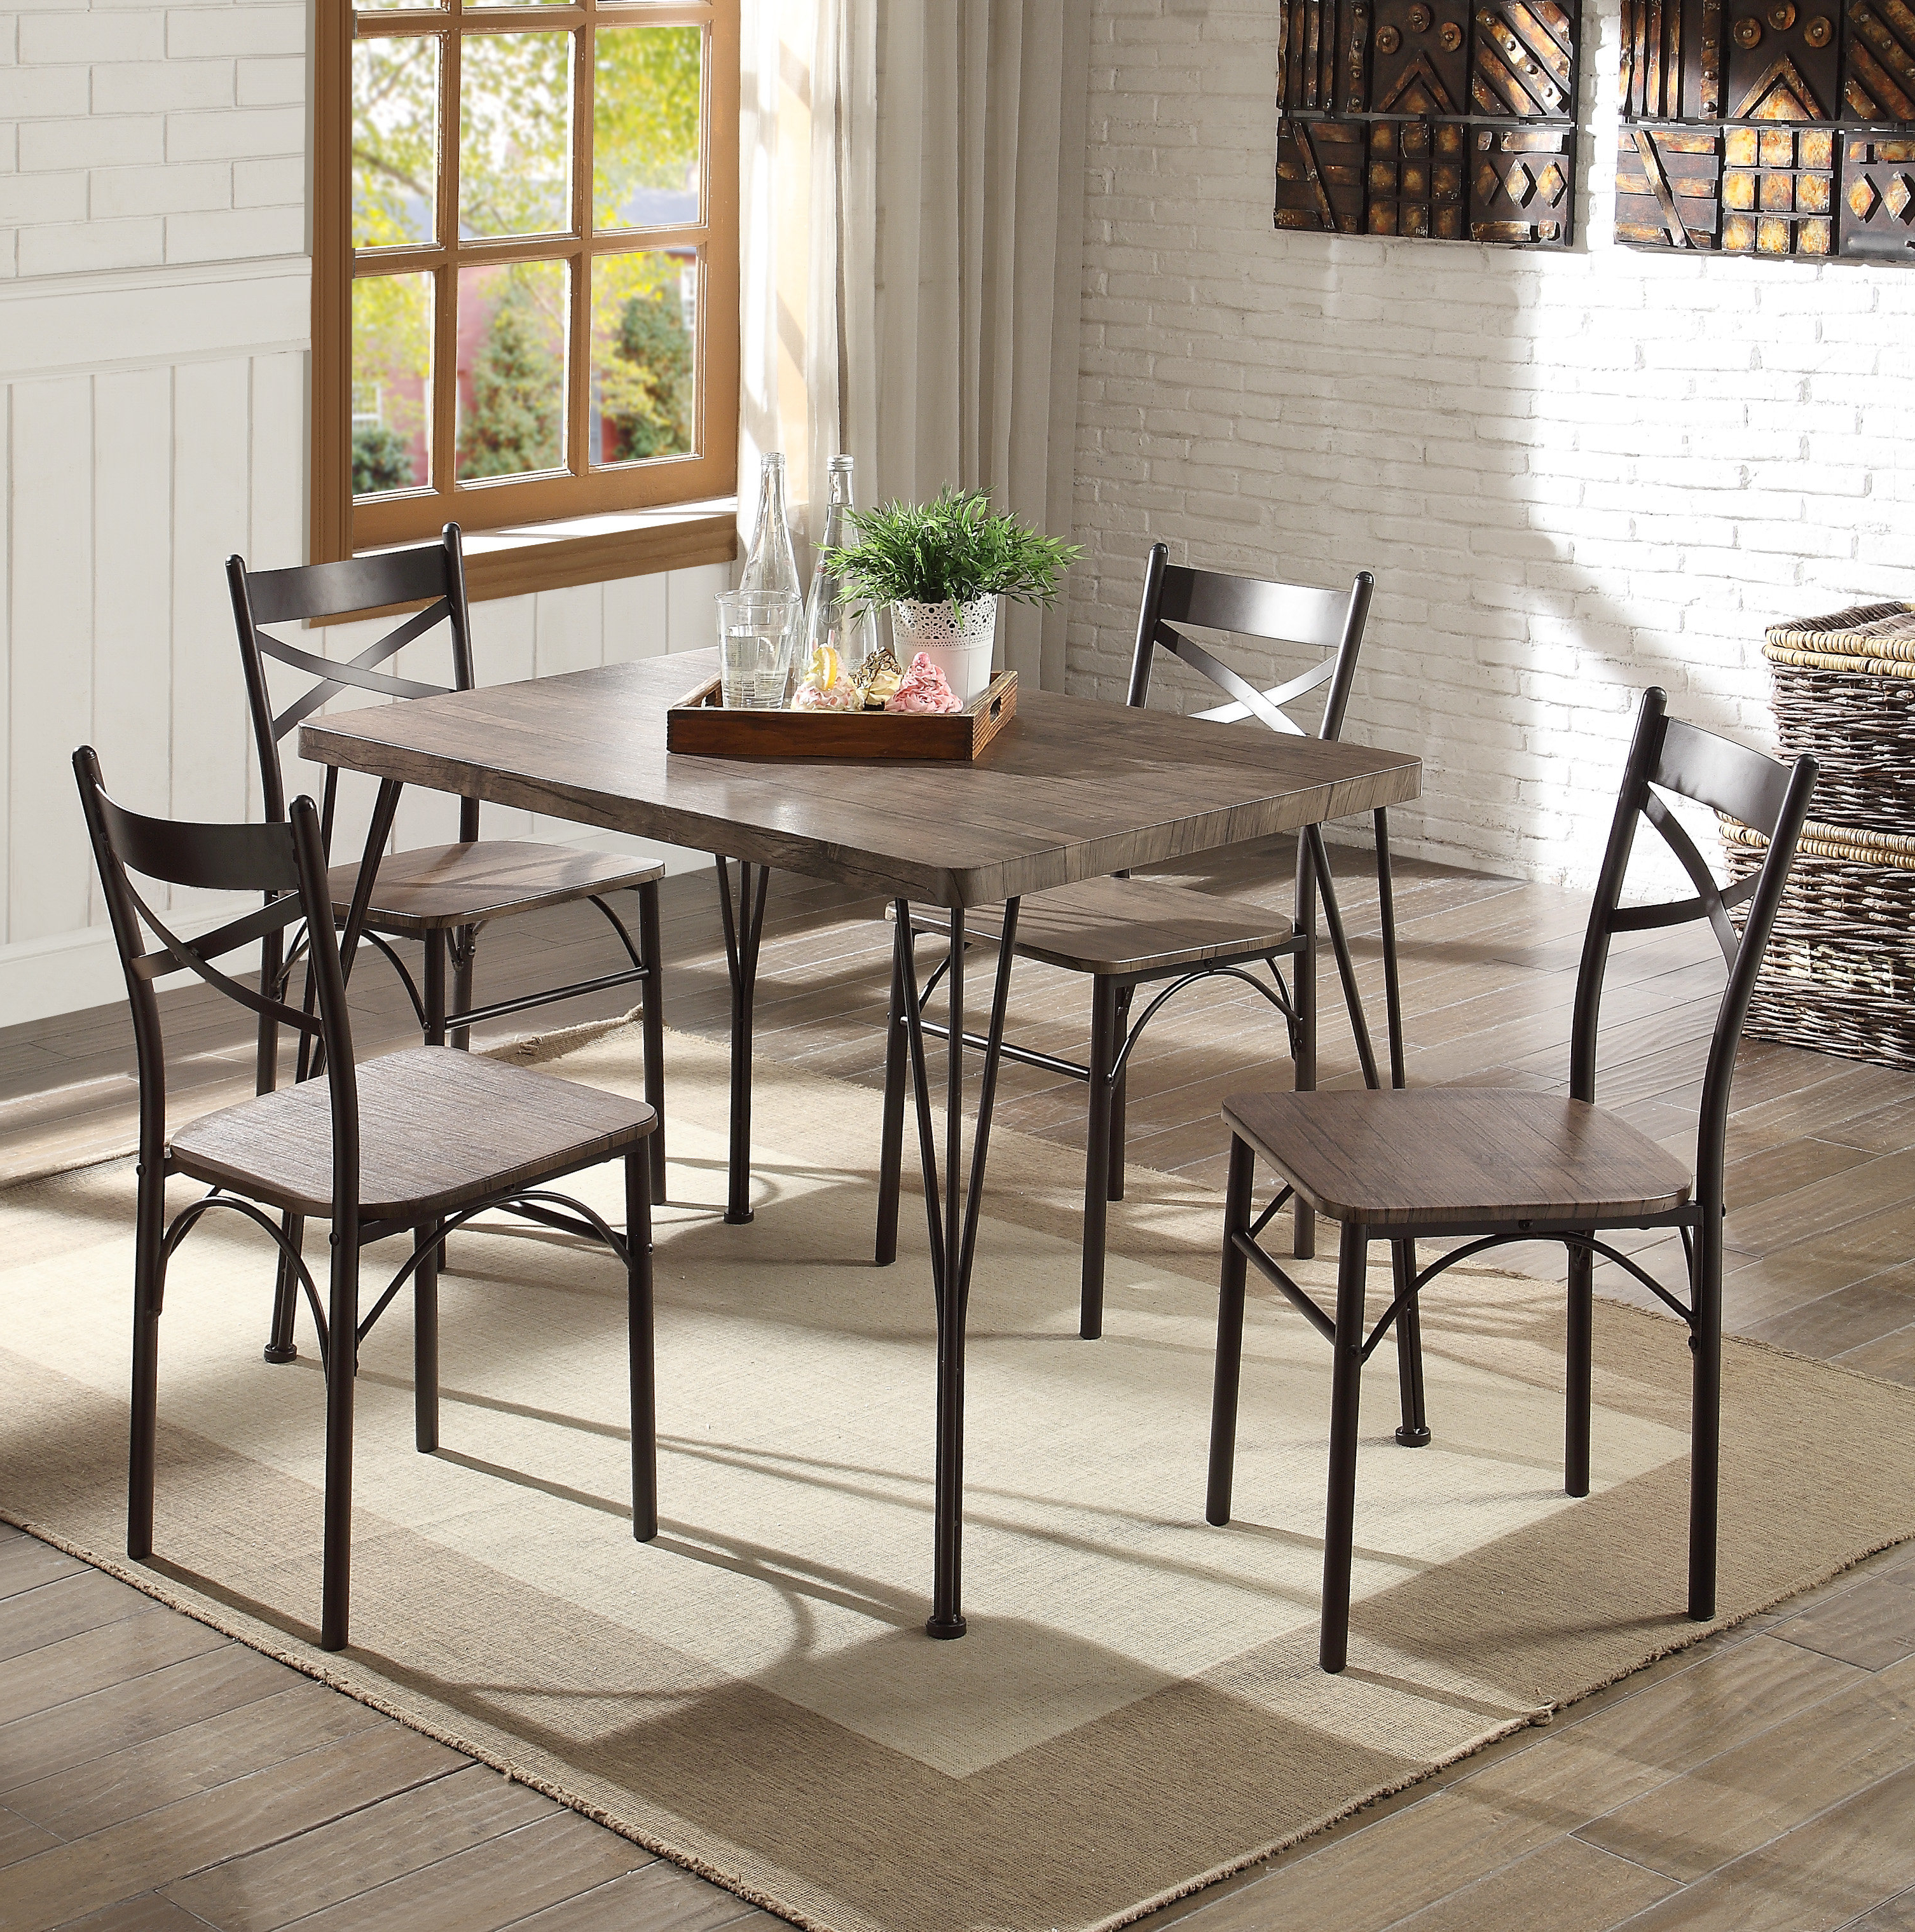 Famous Stouferberg 5 Piece Dining Sets Pertaining To Andover Mills Middleport 5 Piece Dining Set & Reviews (View 4 of 25)